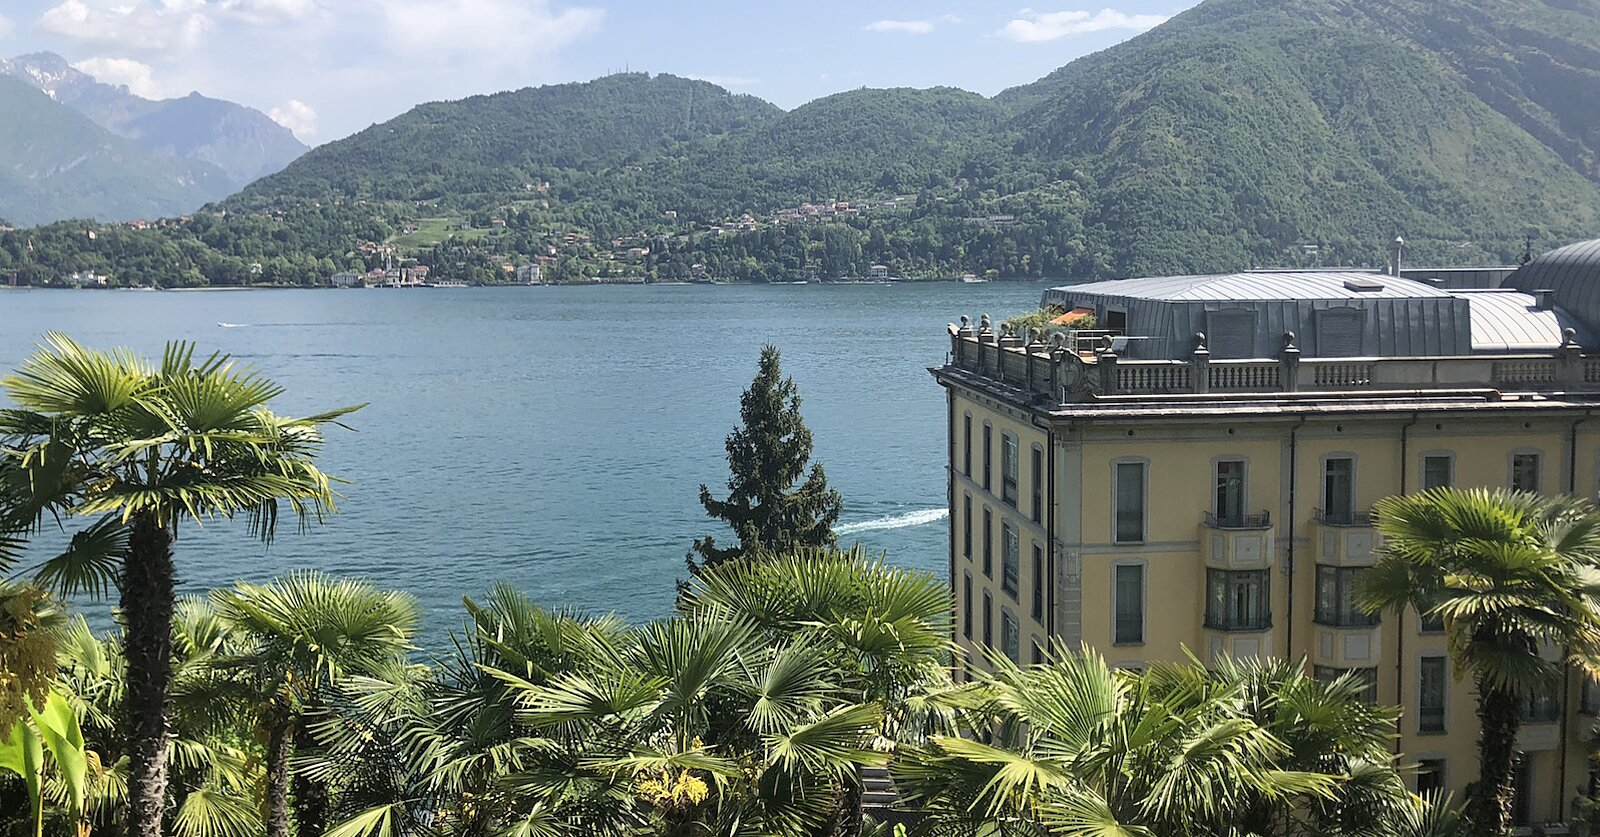 This Lake Como Hotel S Secret Suite In An 18th Century Villa Is One Of The Most Serene Spots In Italy Travel Leisure